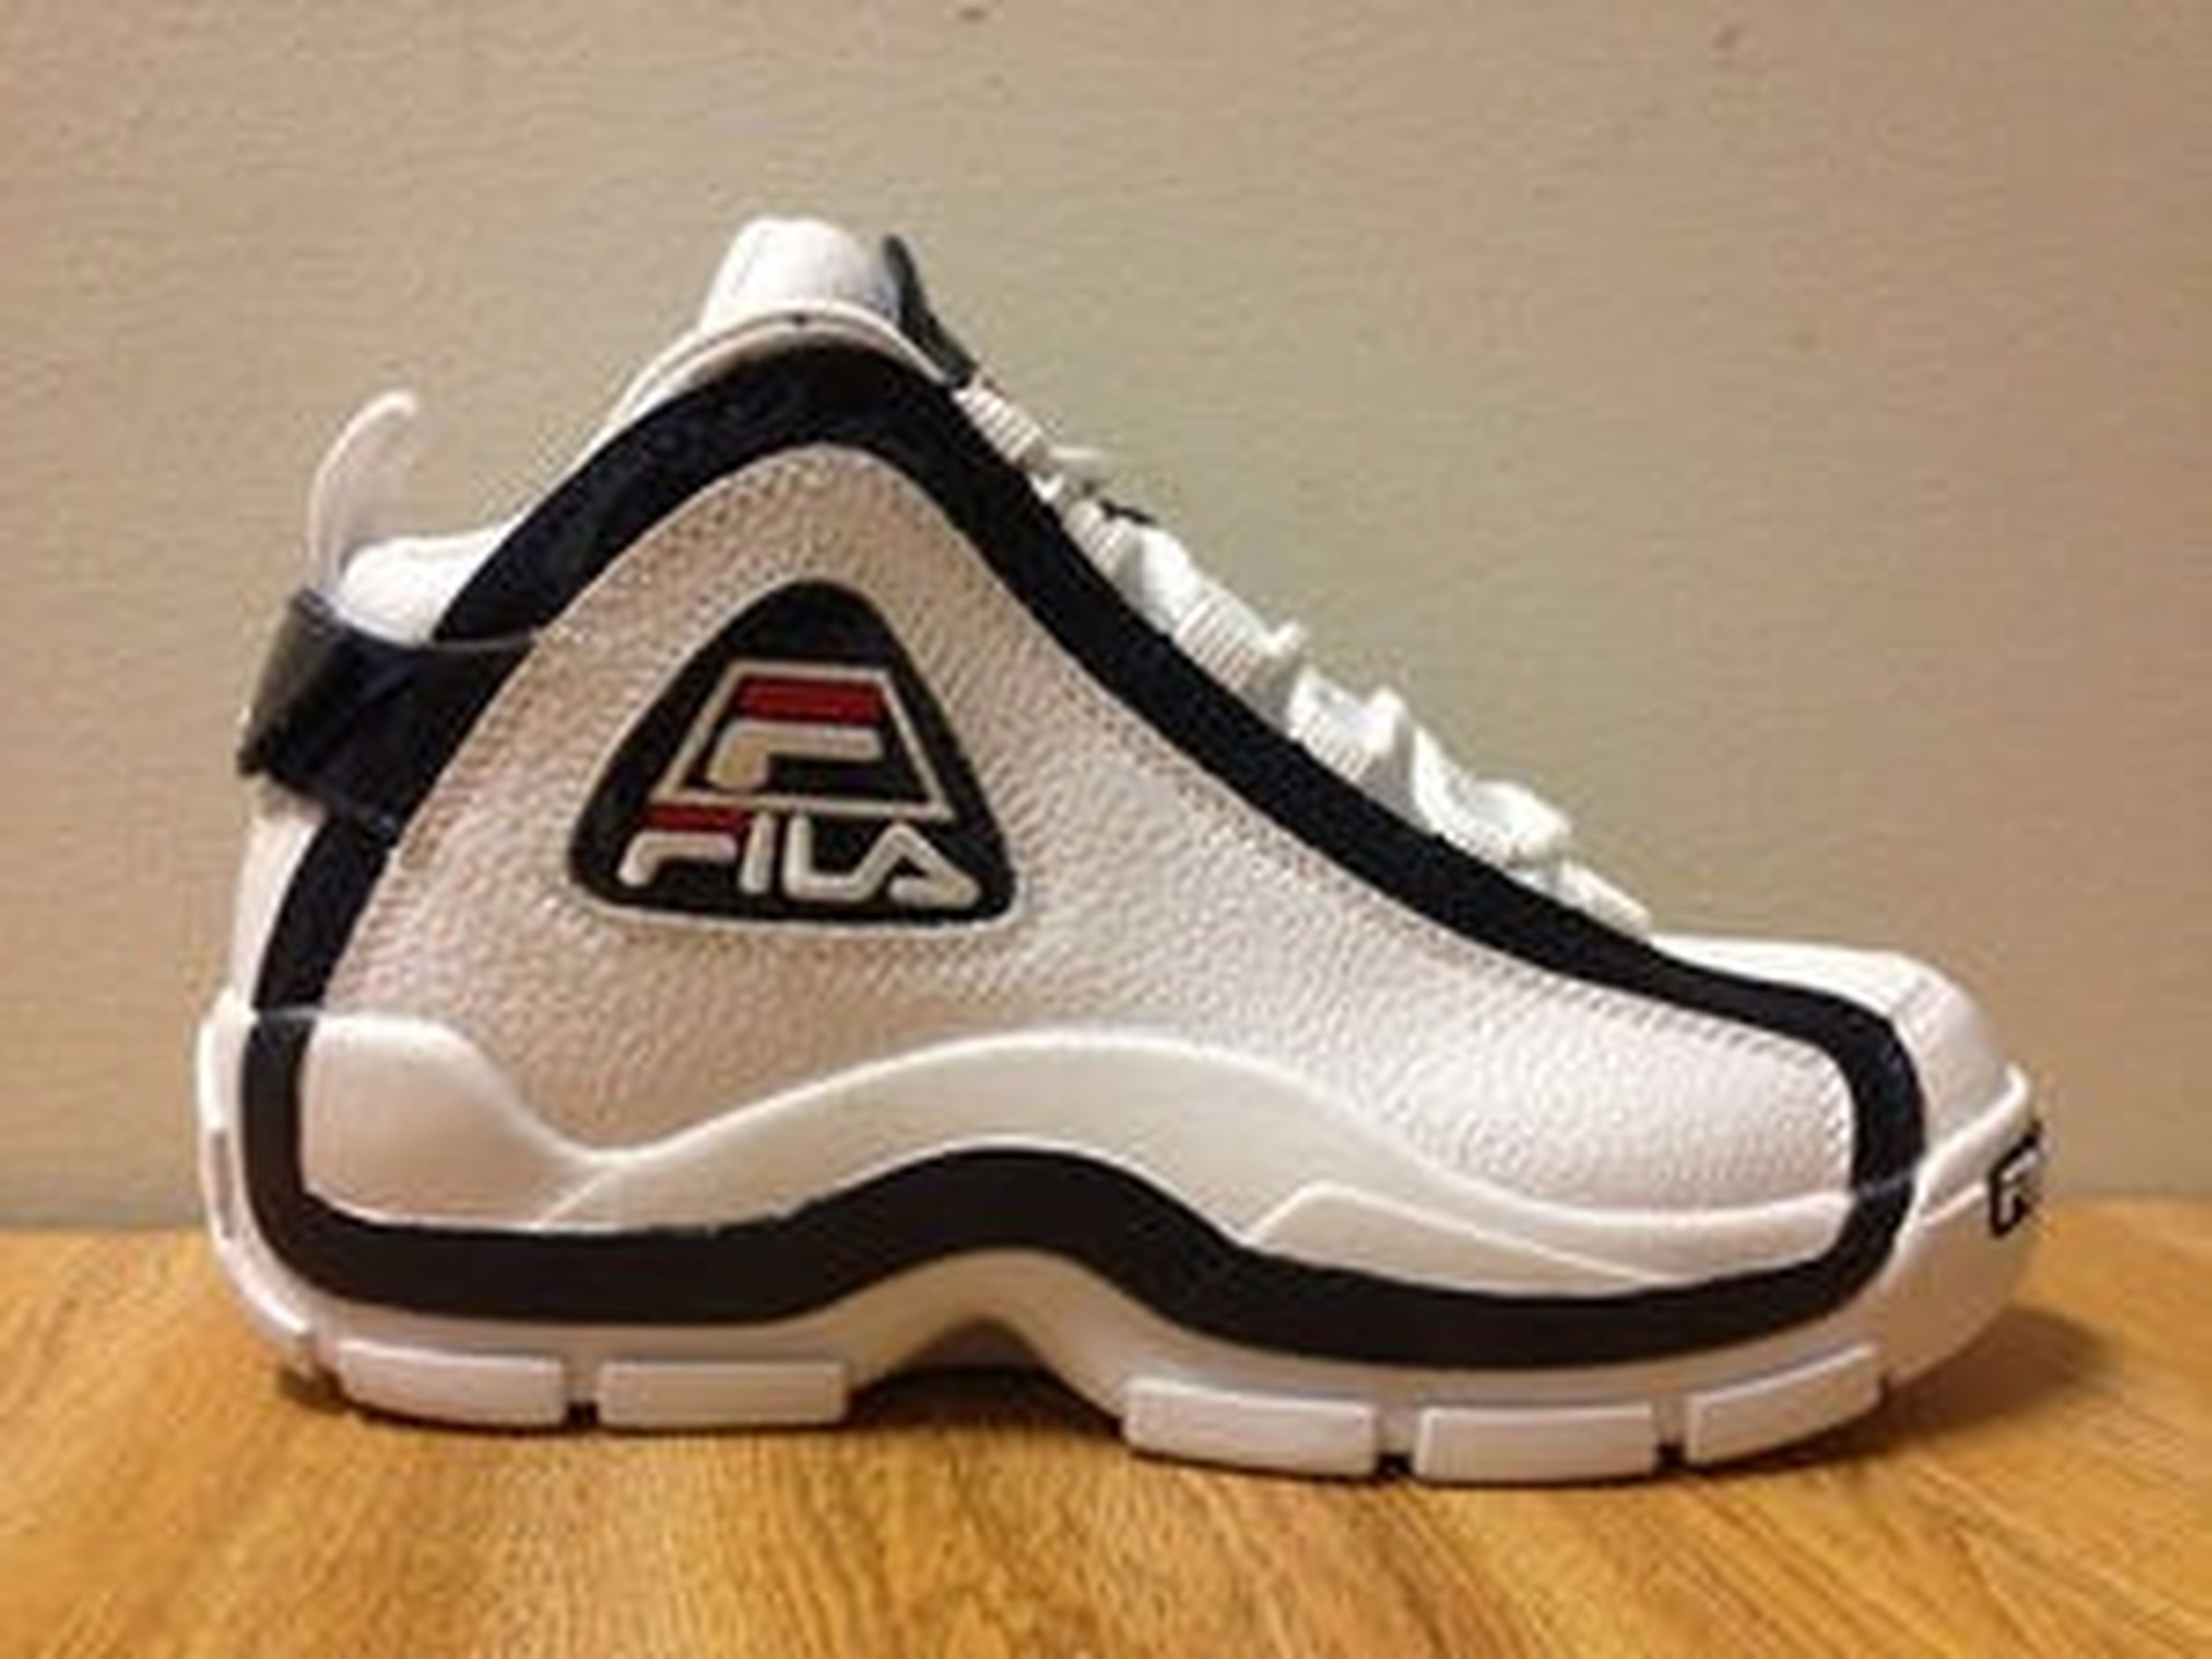 SOLD OUT thanks to everyone for buying #fshoa #sneakerhead #wlu #sneakers #fila